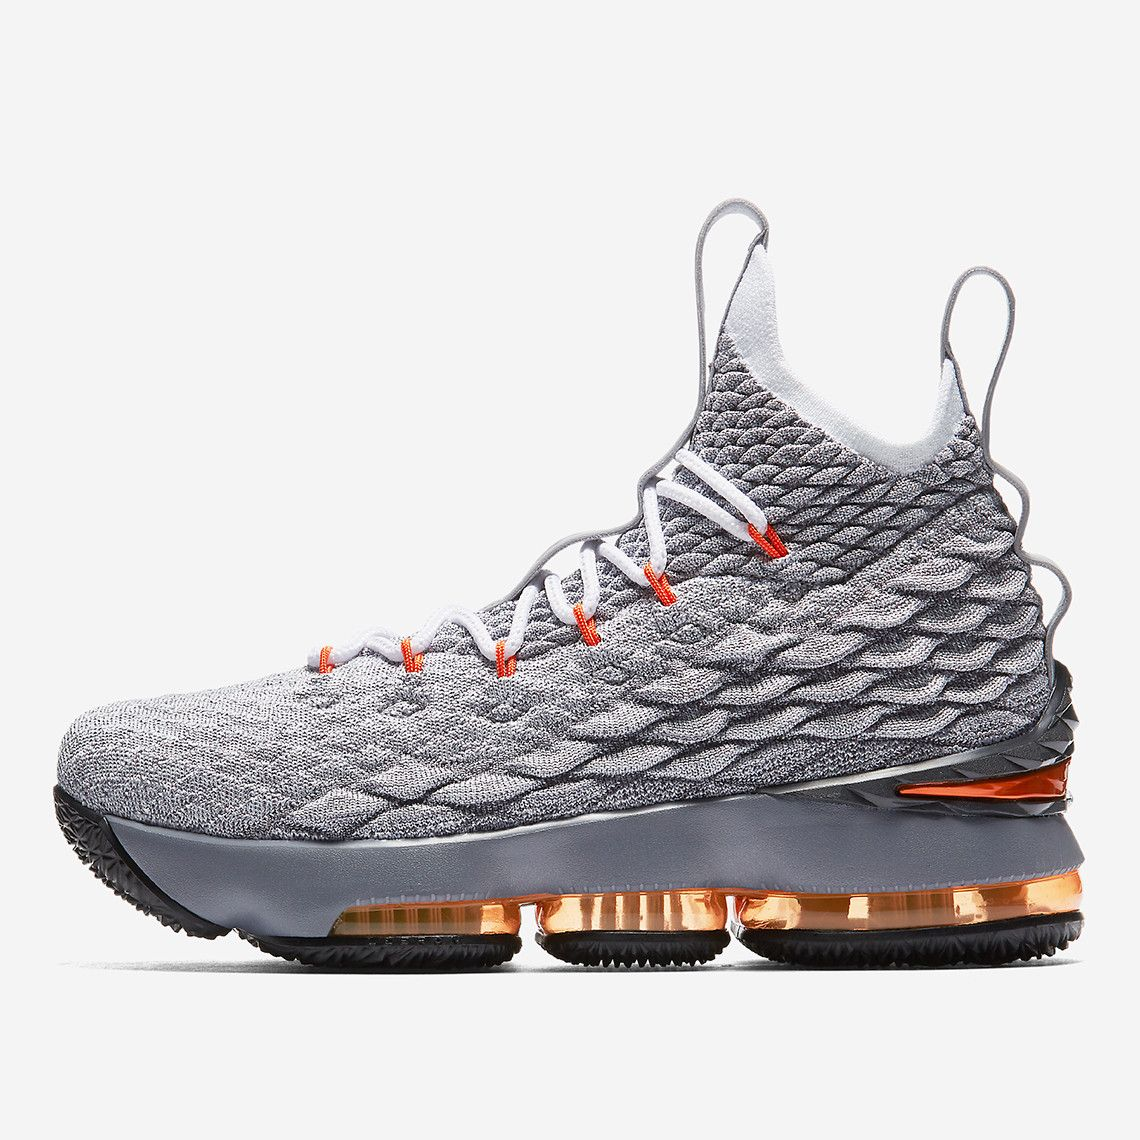 new concept 4ad3d 478d7 Nike LeBron 15 Safety Orange To Drop Exclusively For Kids ...